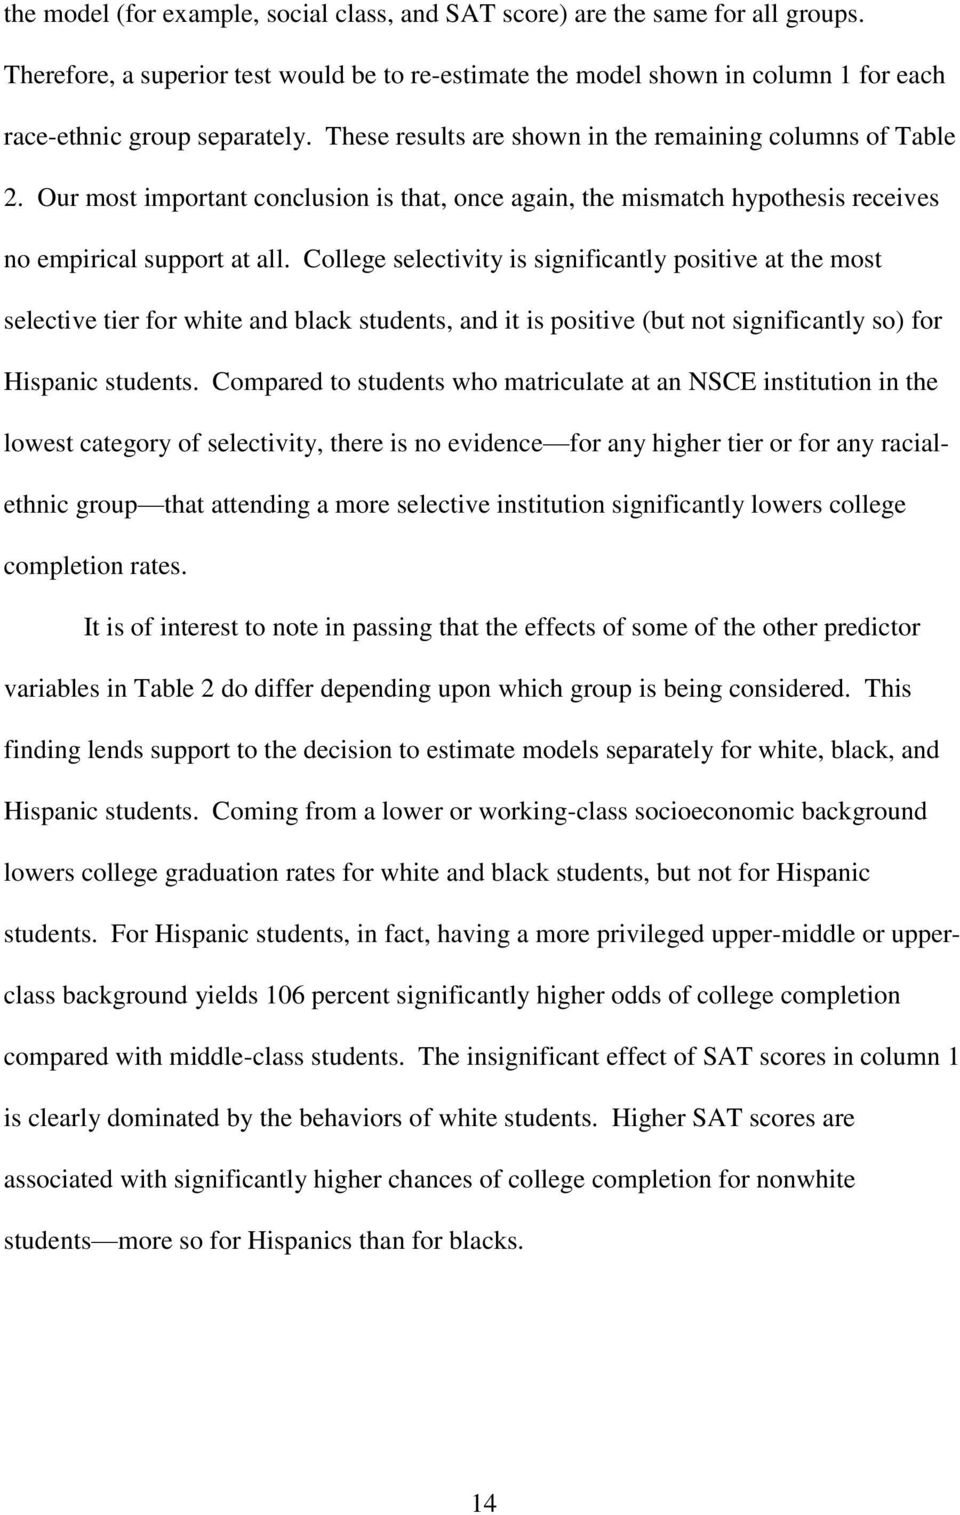 College selectivity is significantly positive at the most selective tier for white and black students, and it is positive (but not significantly so) for Hispanic students.